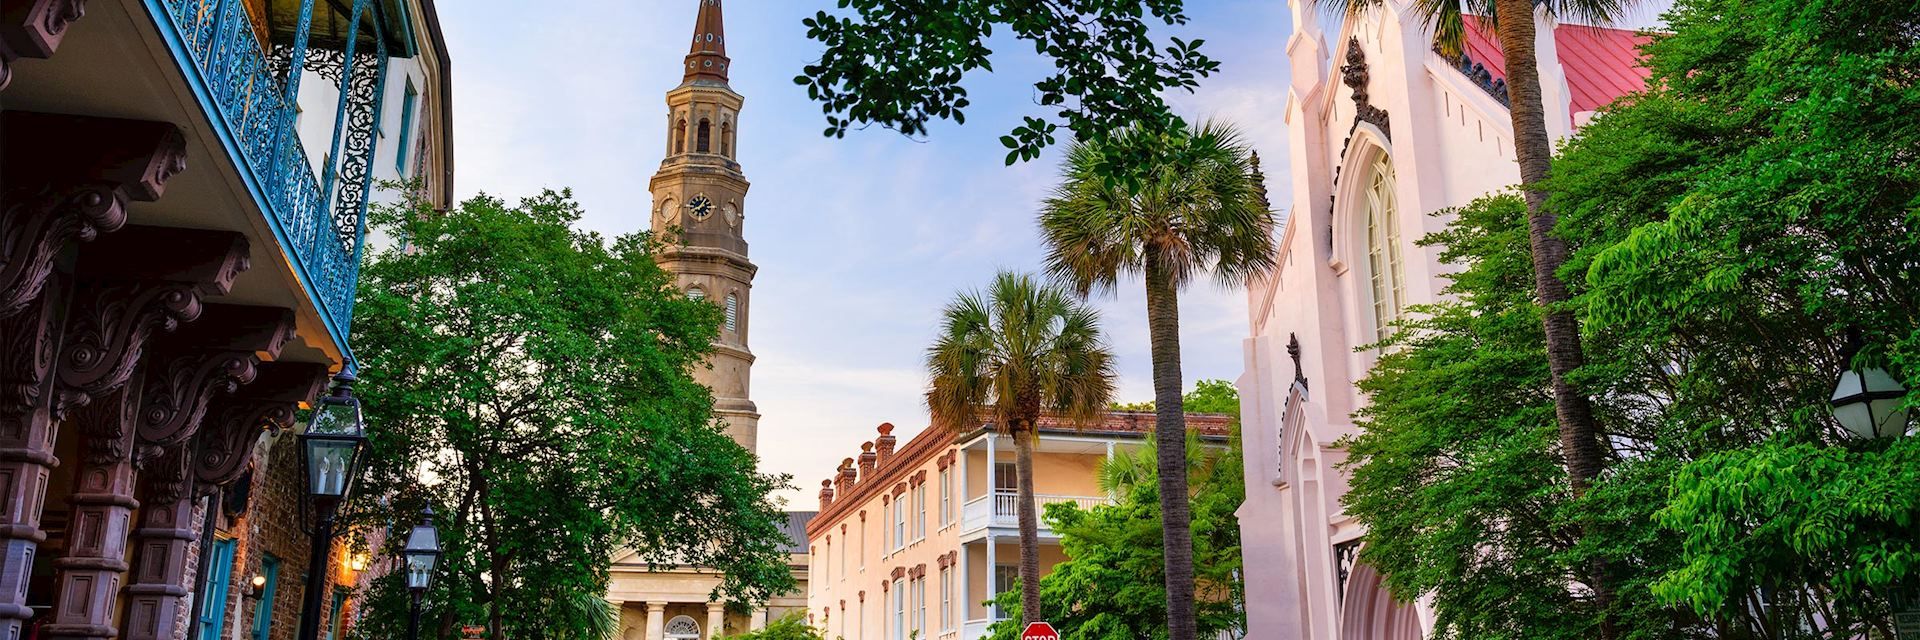 Charleston, South Carolina, the USA